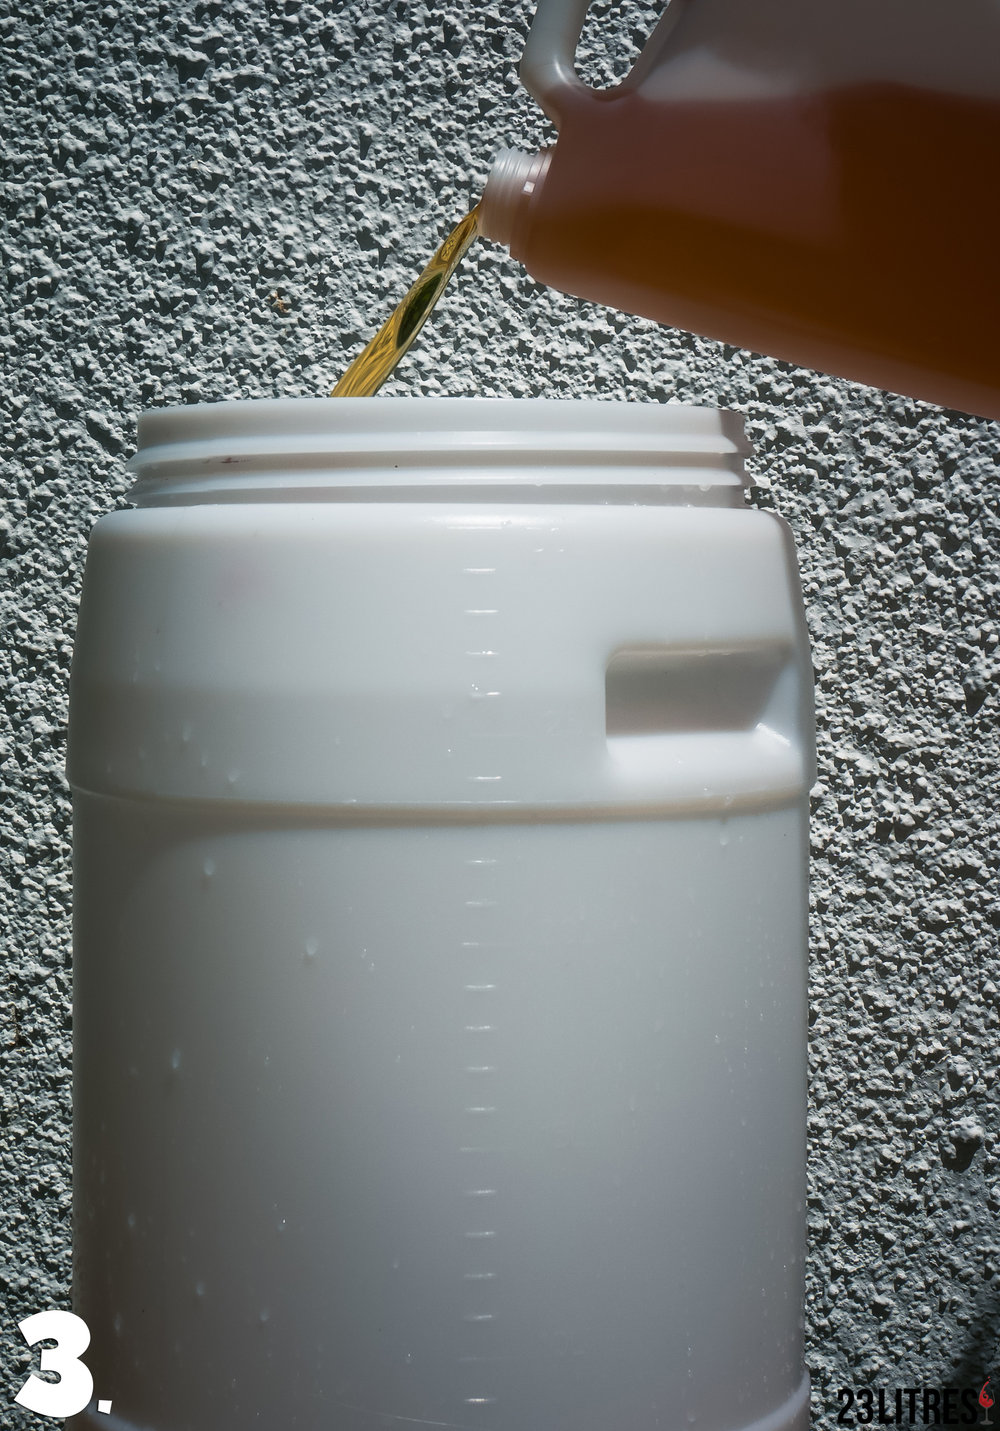 Pour the grape juice concentrate into the 30L fermenter.